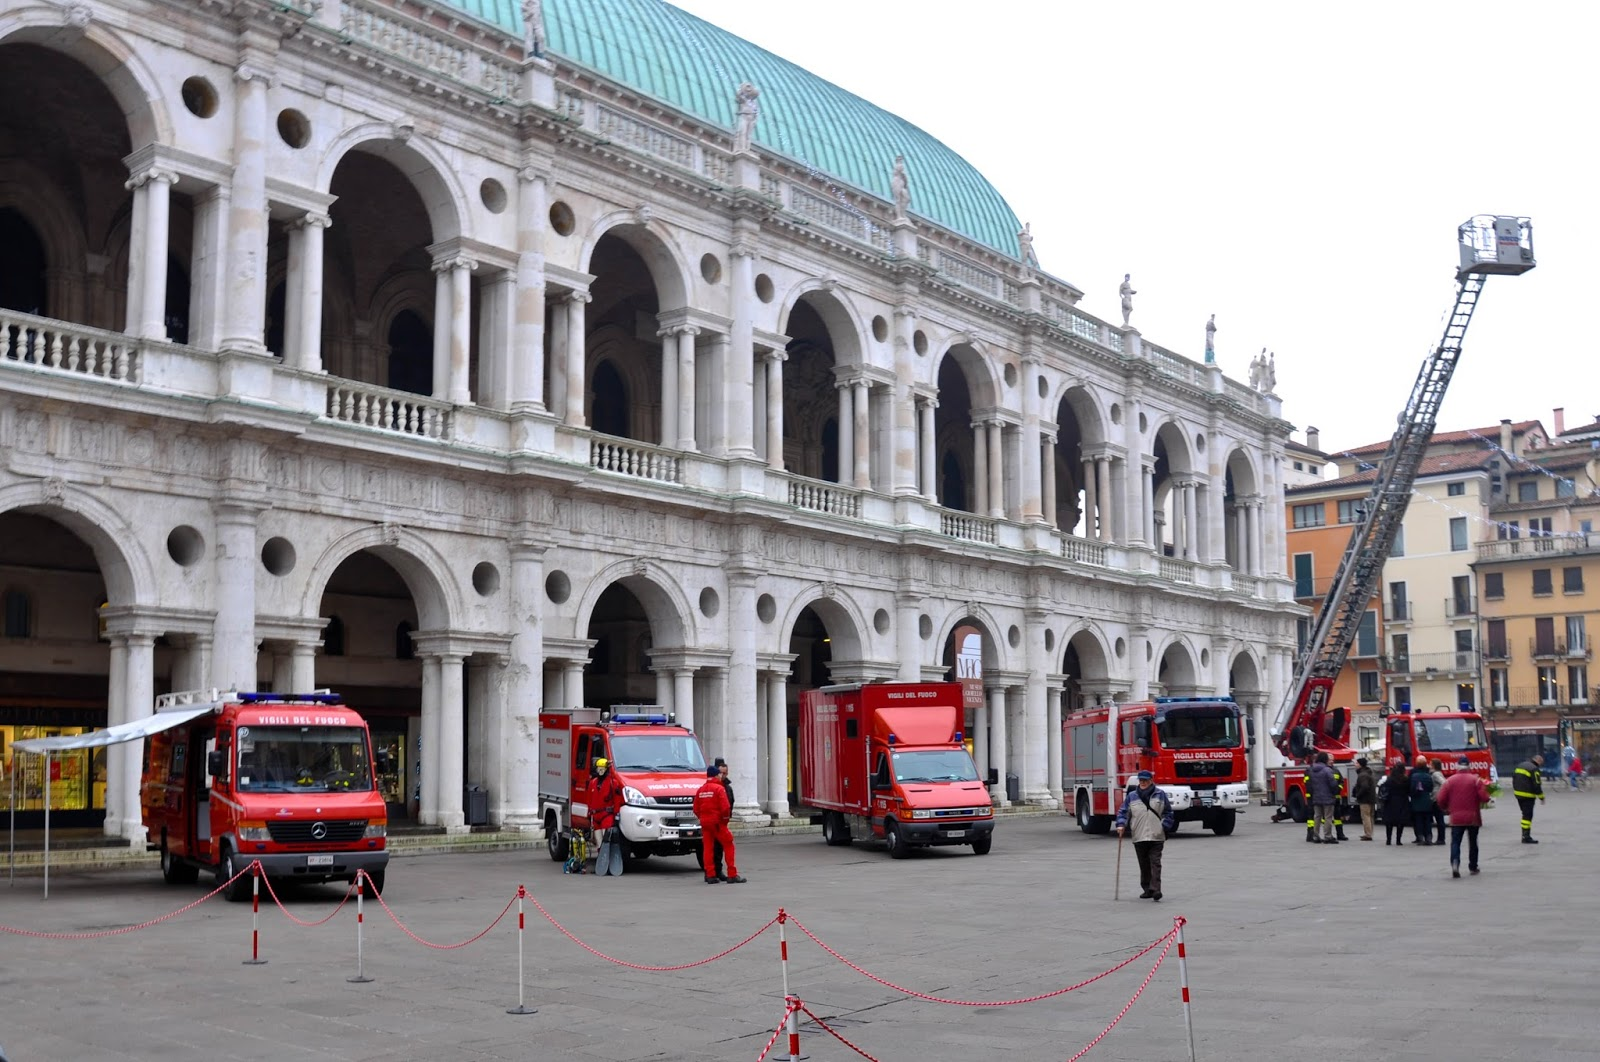 Fire engines, Piazza dei Signori, Saint Barbara celebration, Vicenza, Veneto, Italy